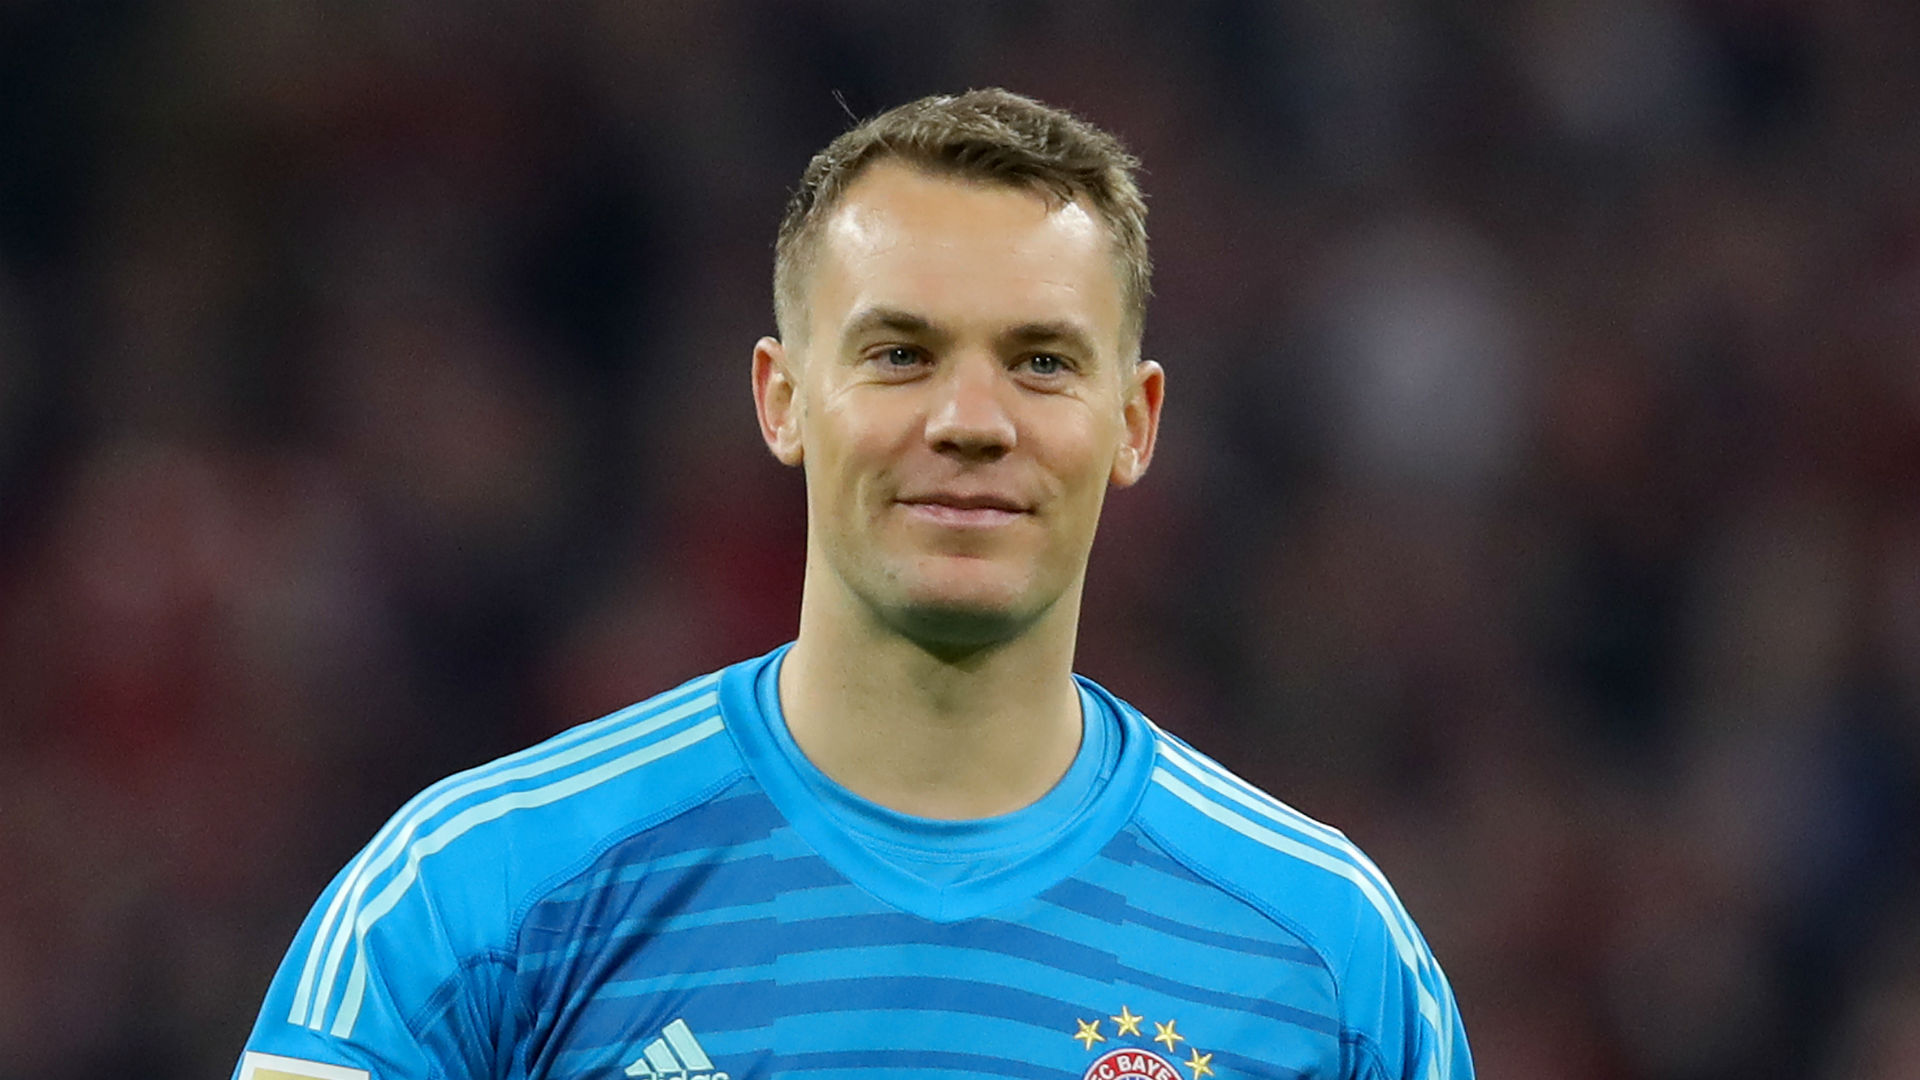 Neuer laughed at retirement rumours